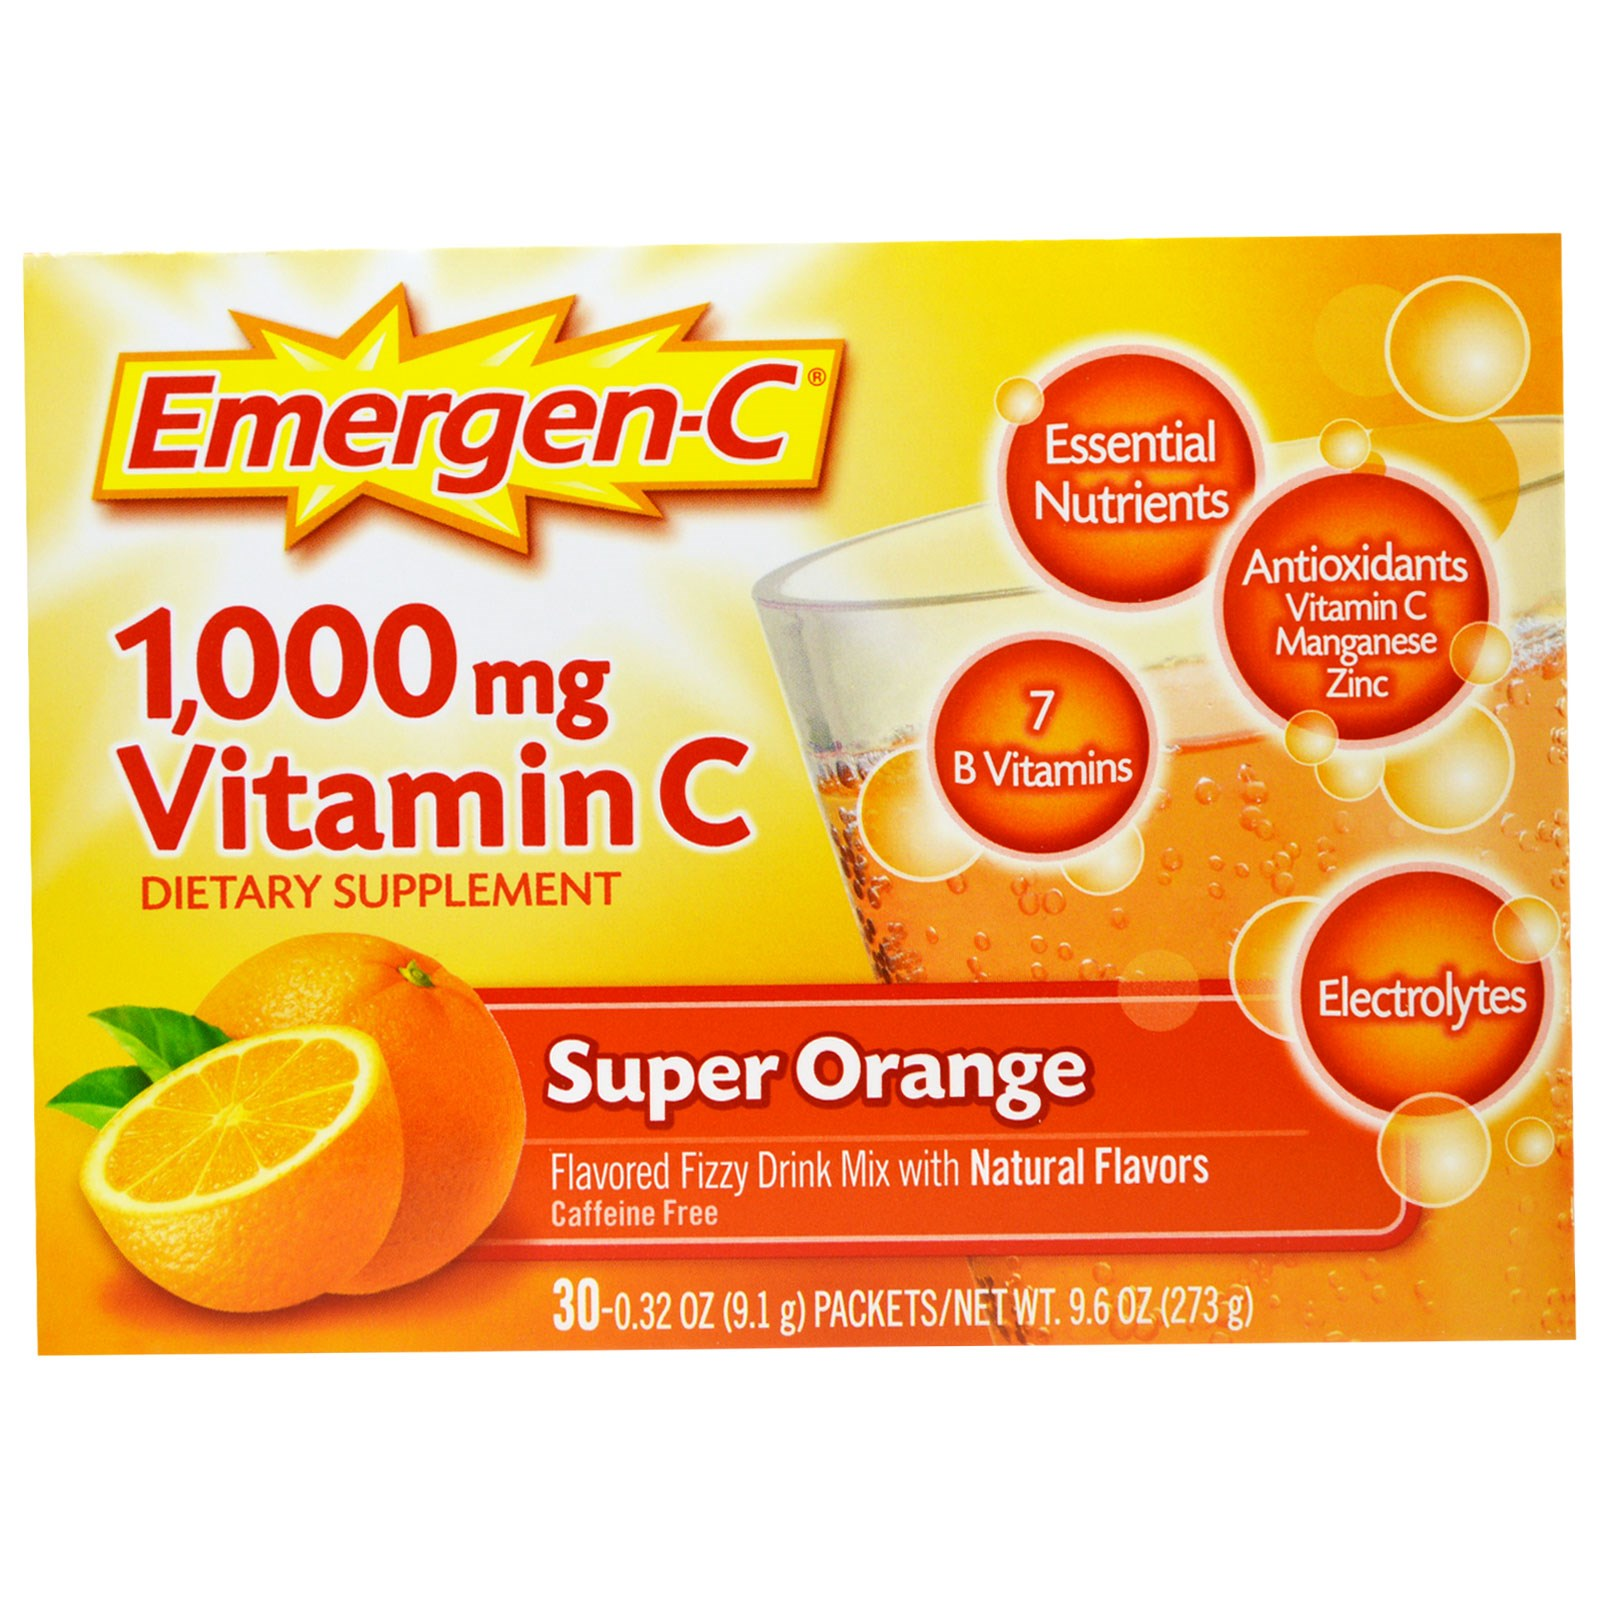 Emergen-C Super Orange Dietary Supplement